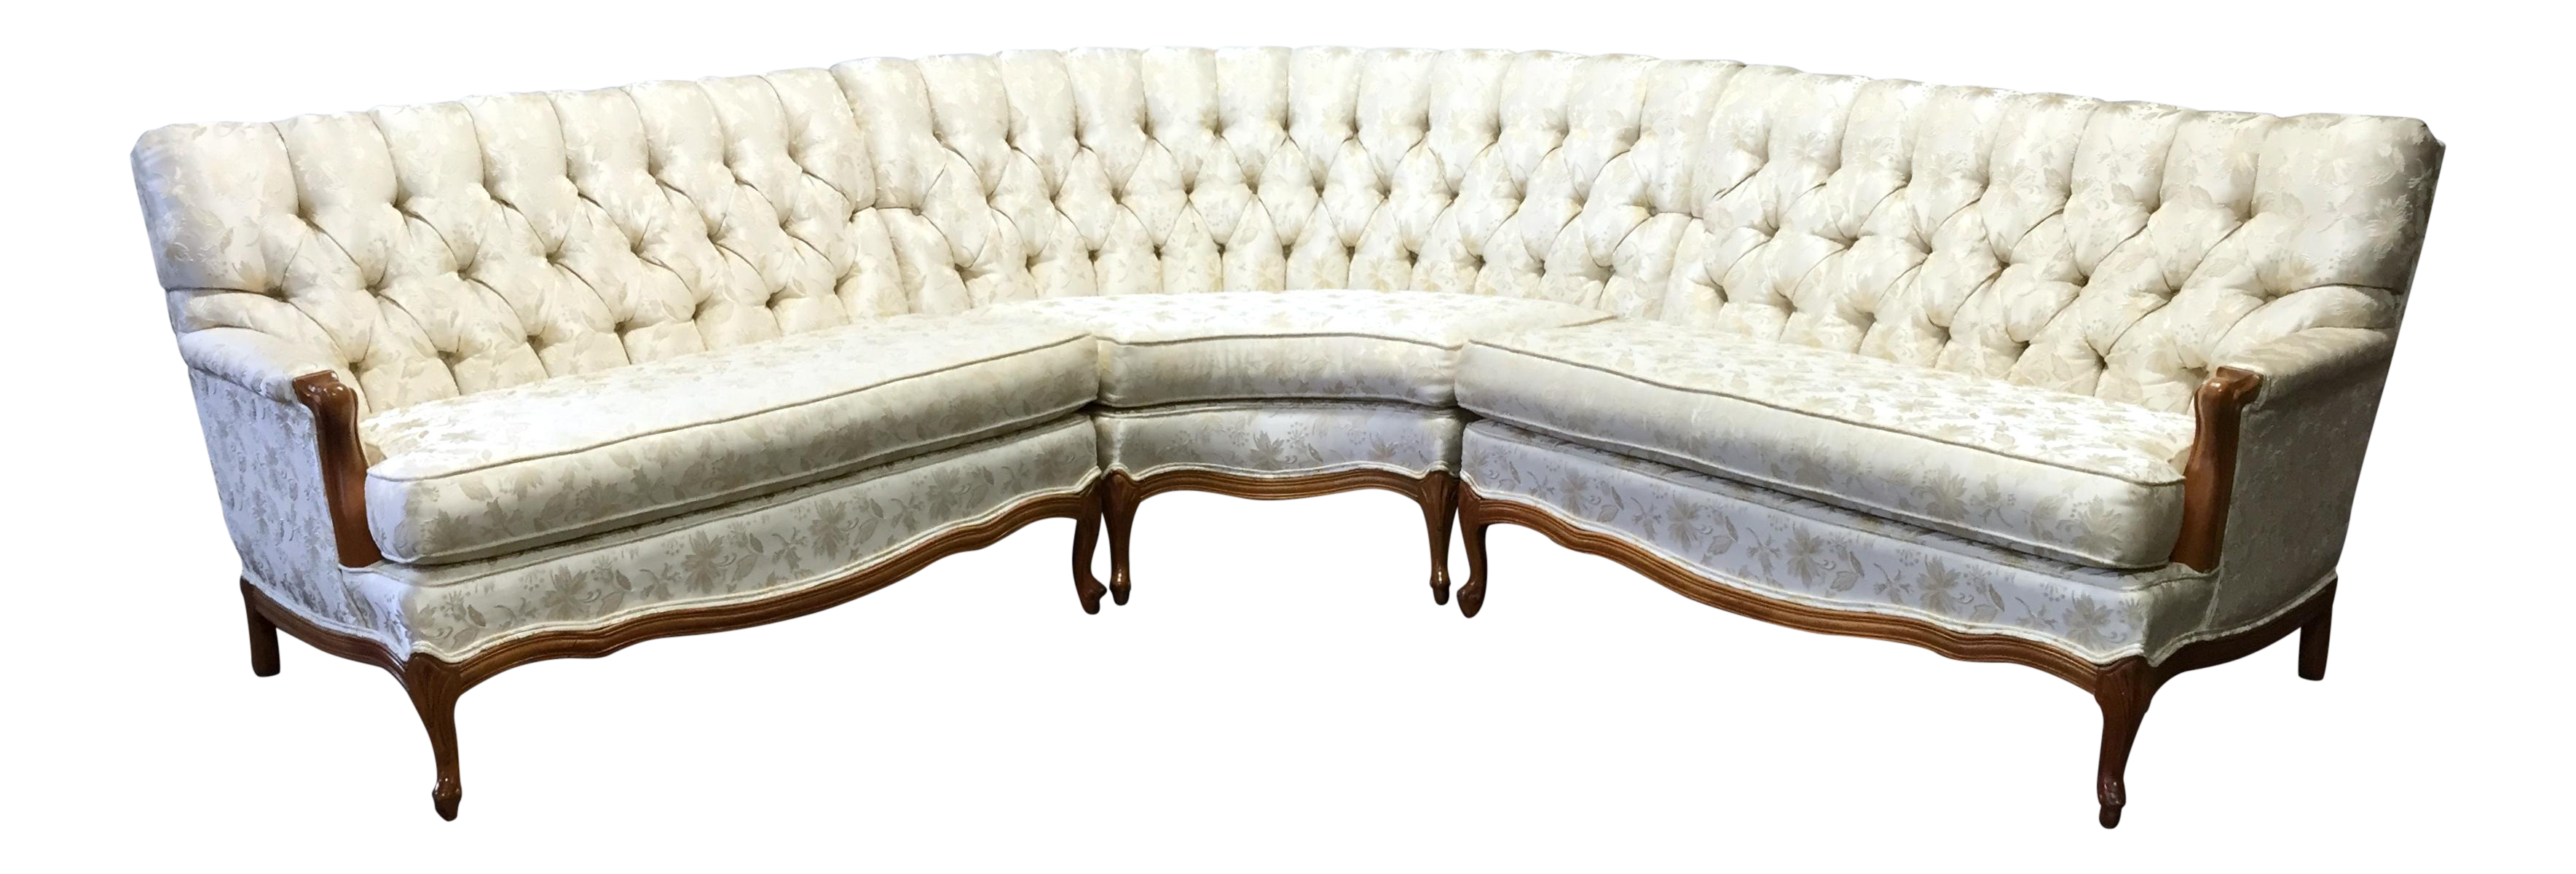 Vintage 1960 s French Provincial Sectional Sofa